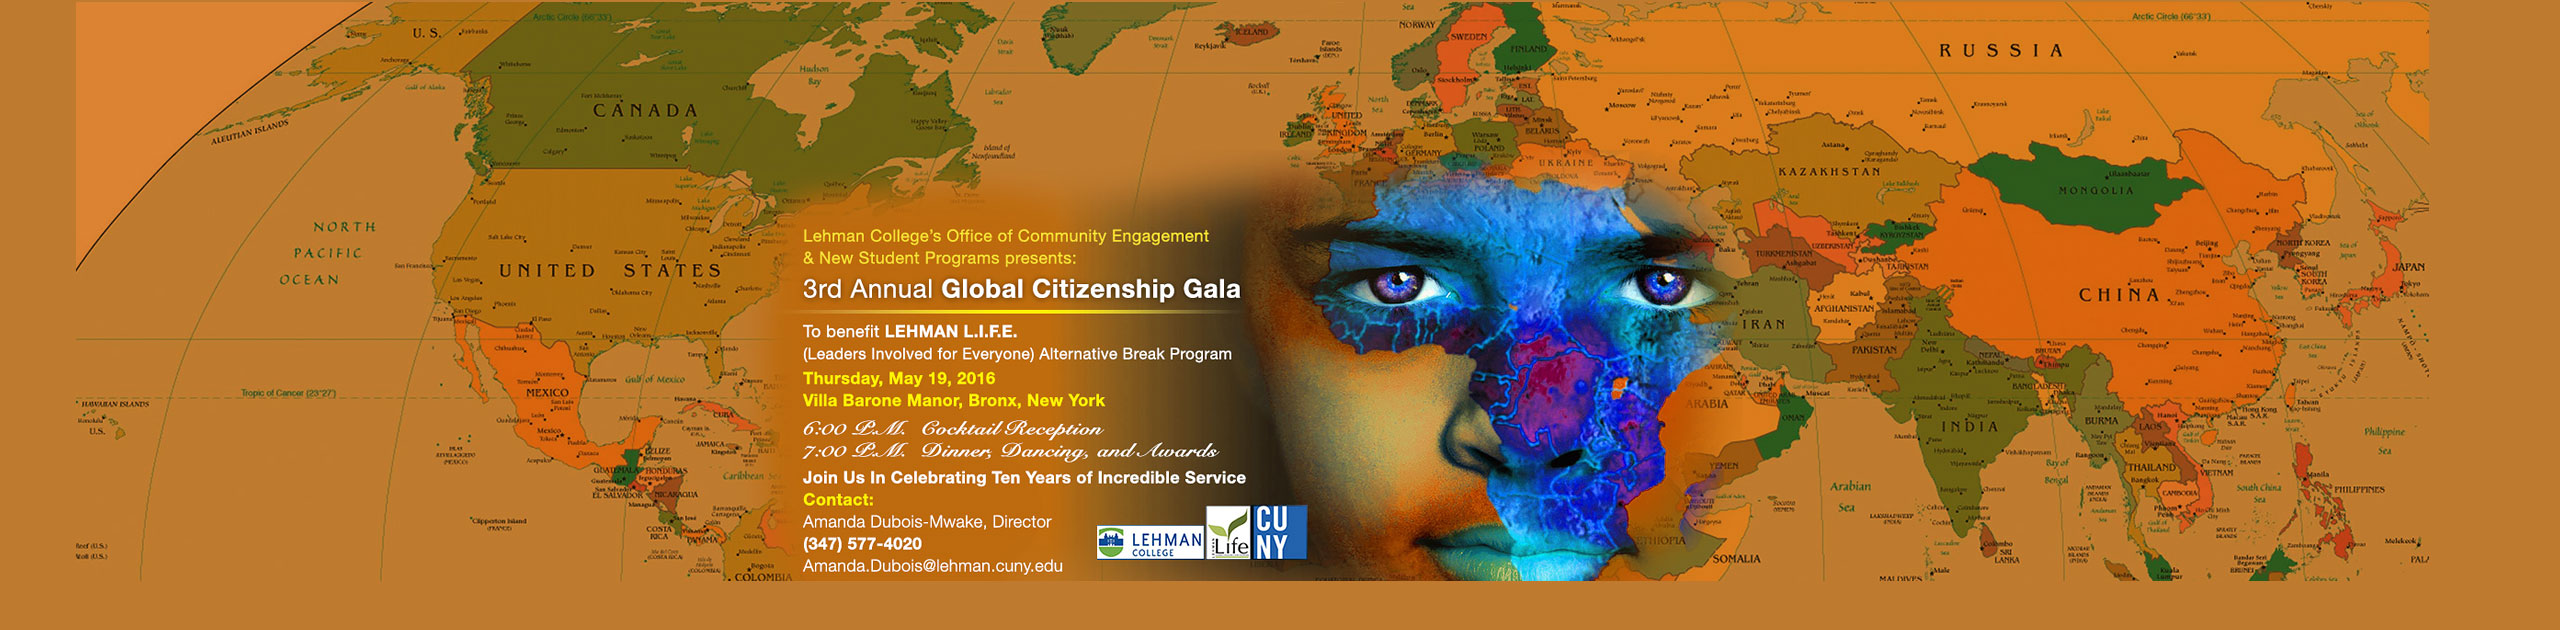 Annual Global Citizenship Gala